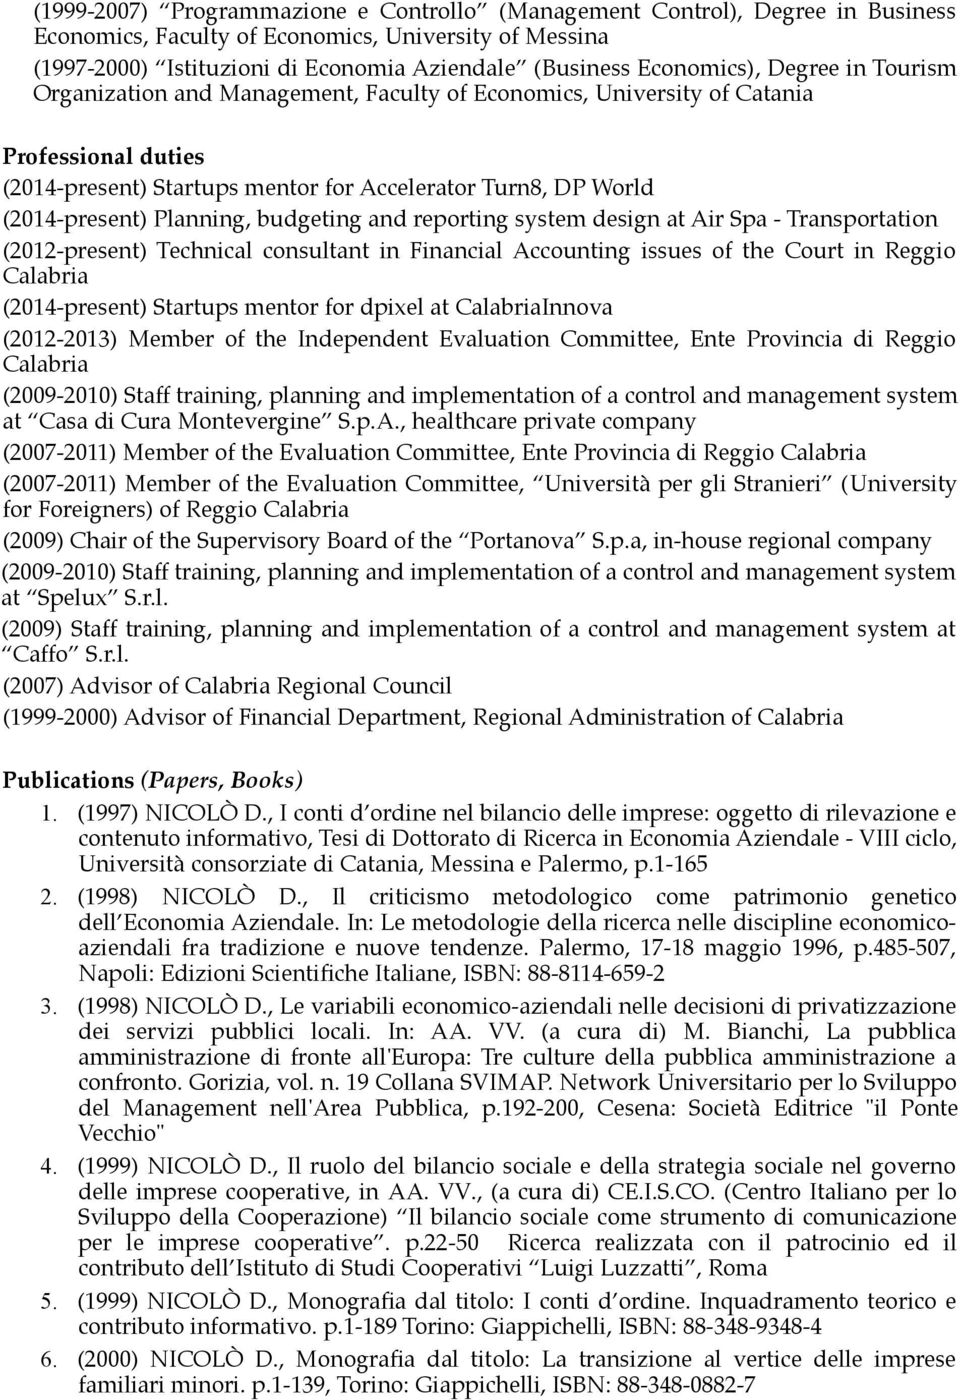 (2014-present) Planning, budgeting and reporting system design at Air Spa - Transportation (2012-present) Technical consultant in Financial Accounting issues of the Court in Reggio Calabria